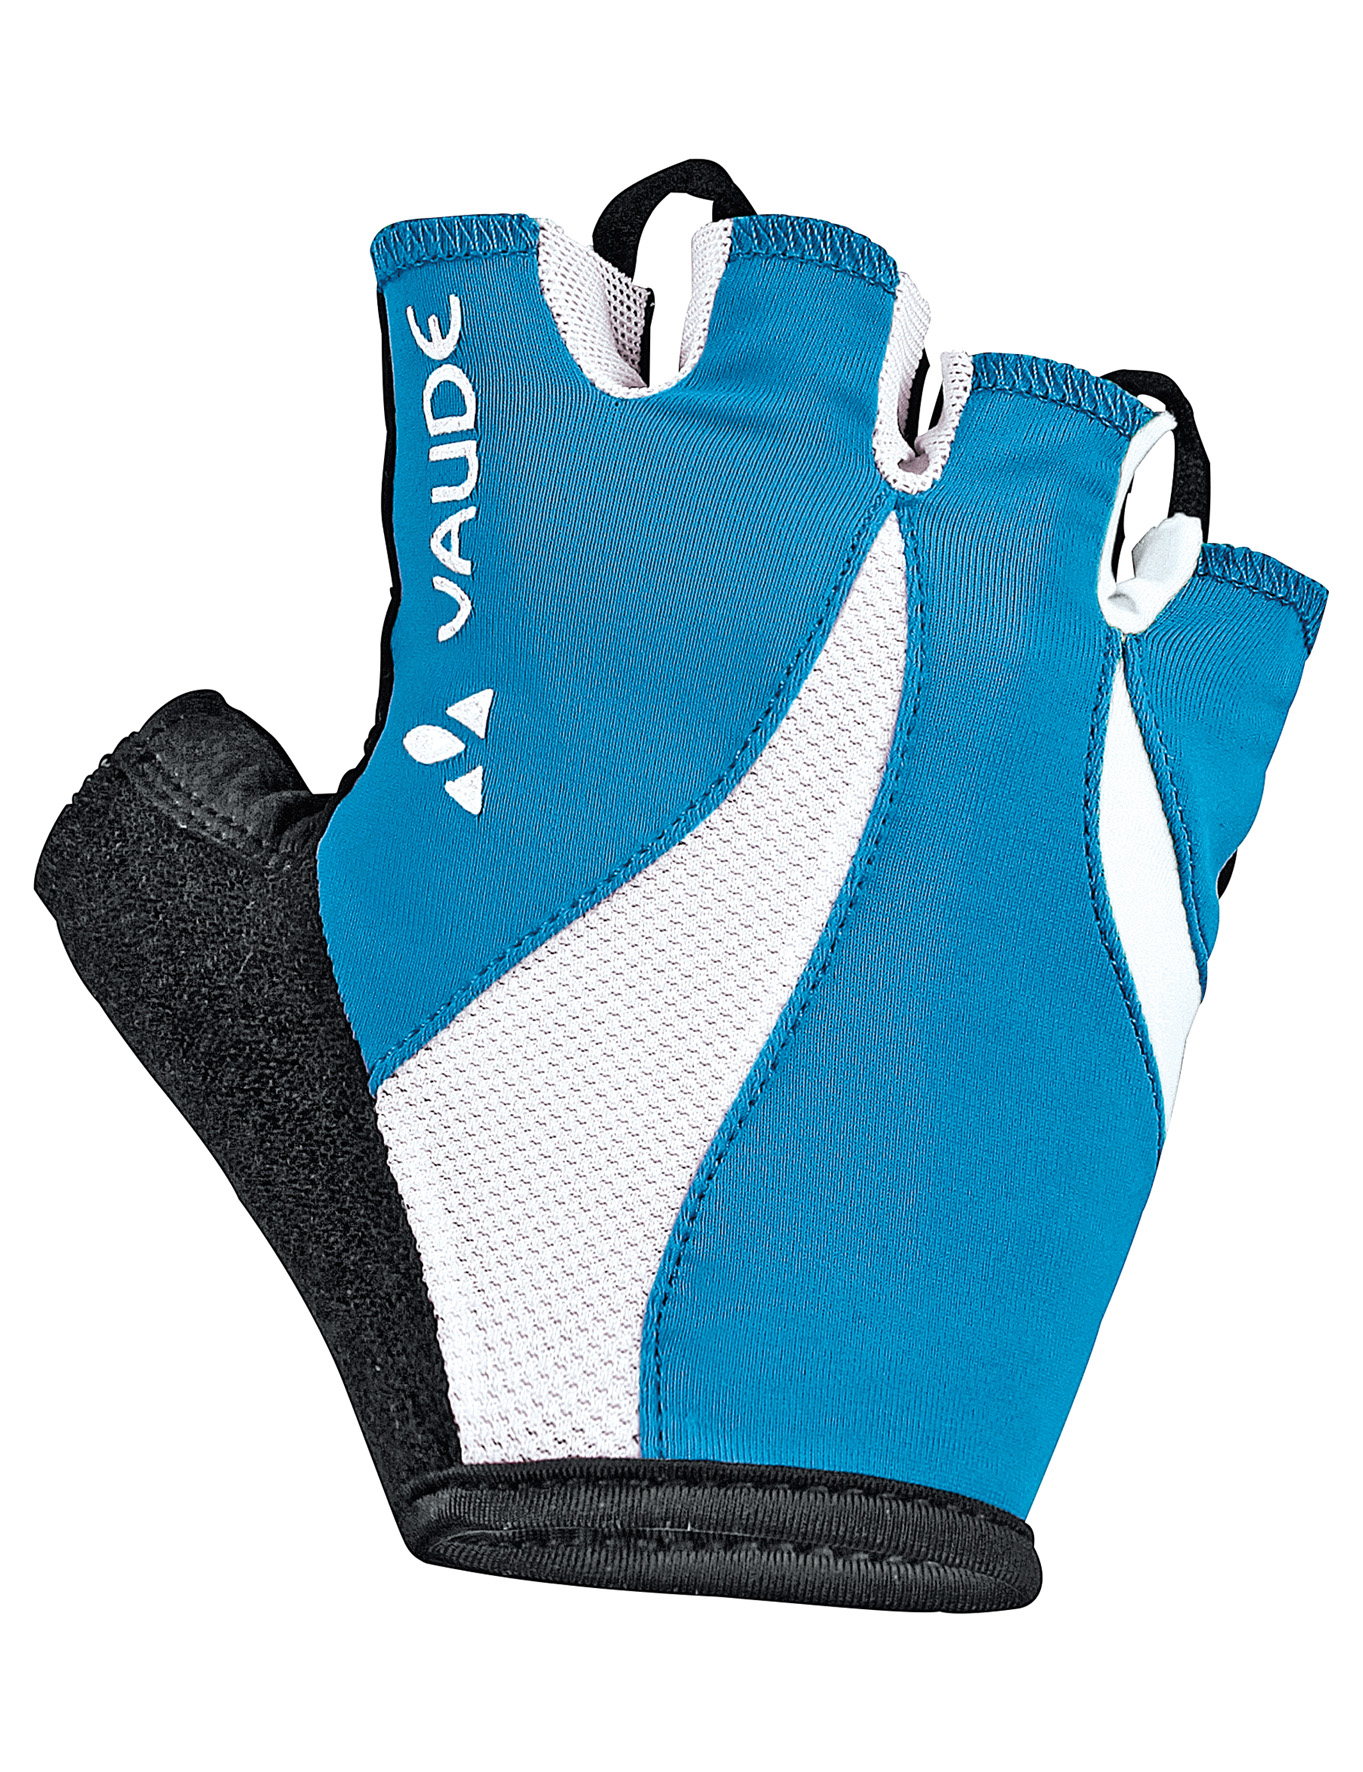 VAUDE Women´s Advanced Gloves spring blue Größe 5 - schneider-sports